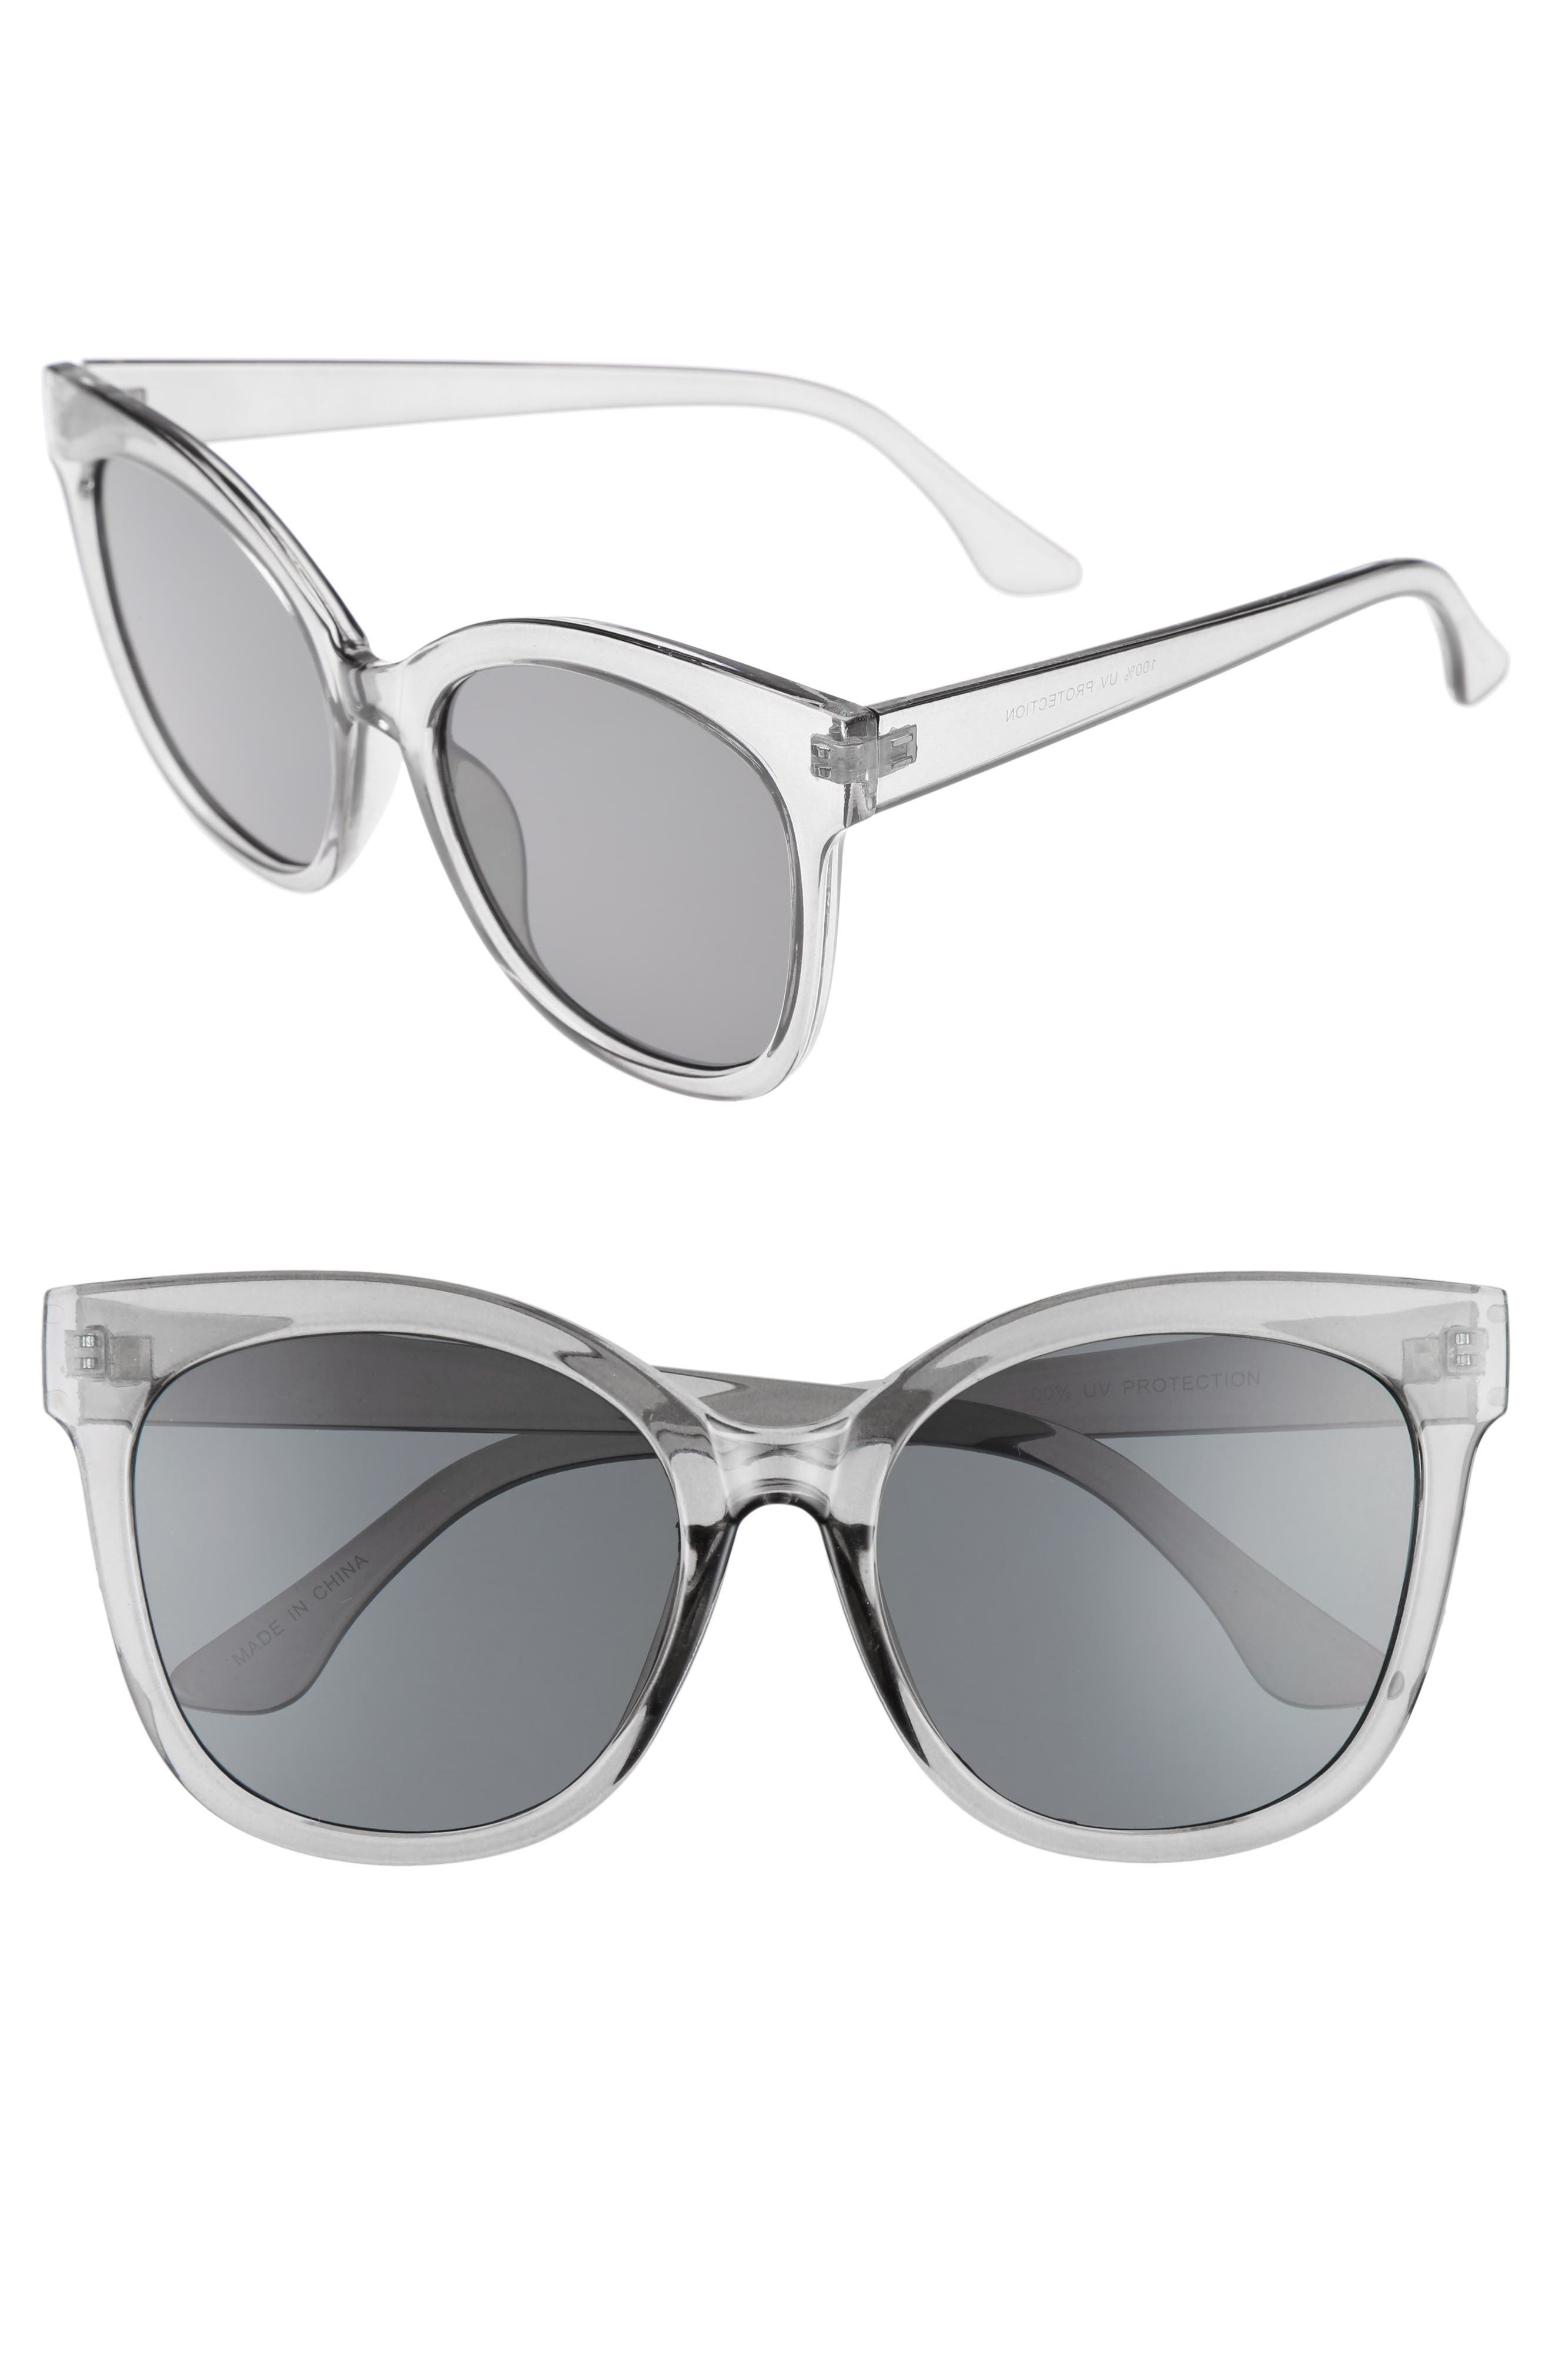 55mm Square Sunglasses,                         Main,                         color, 001